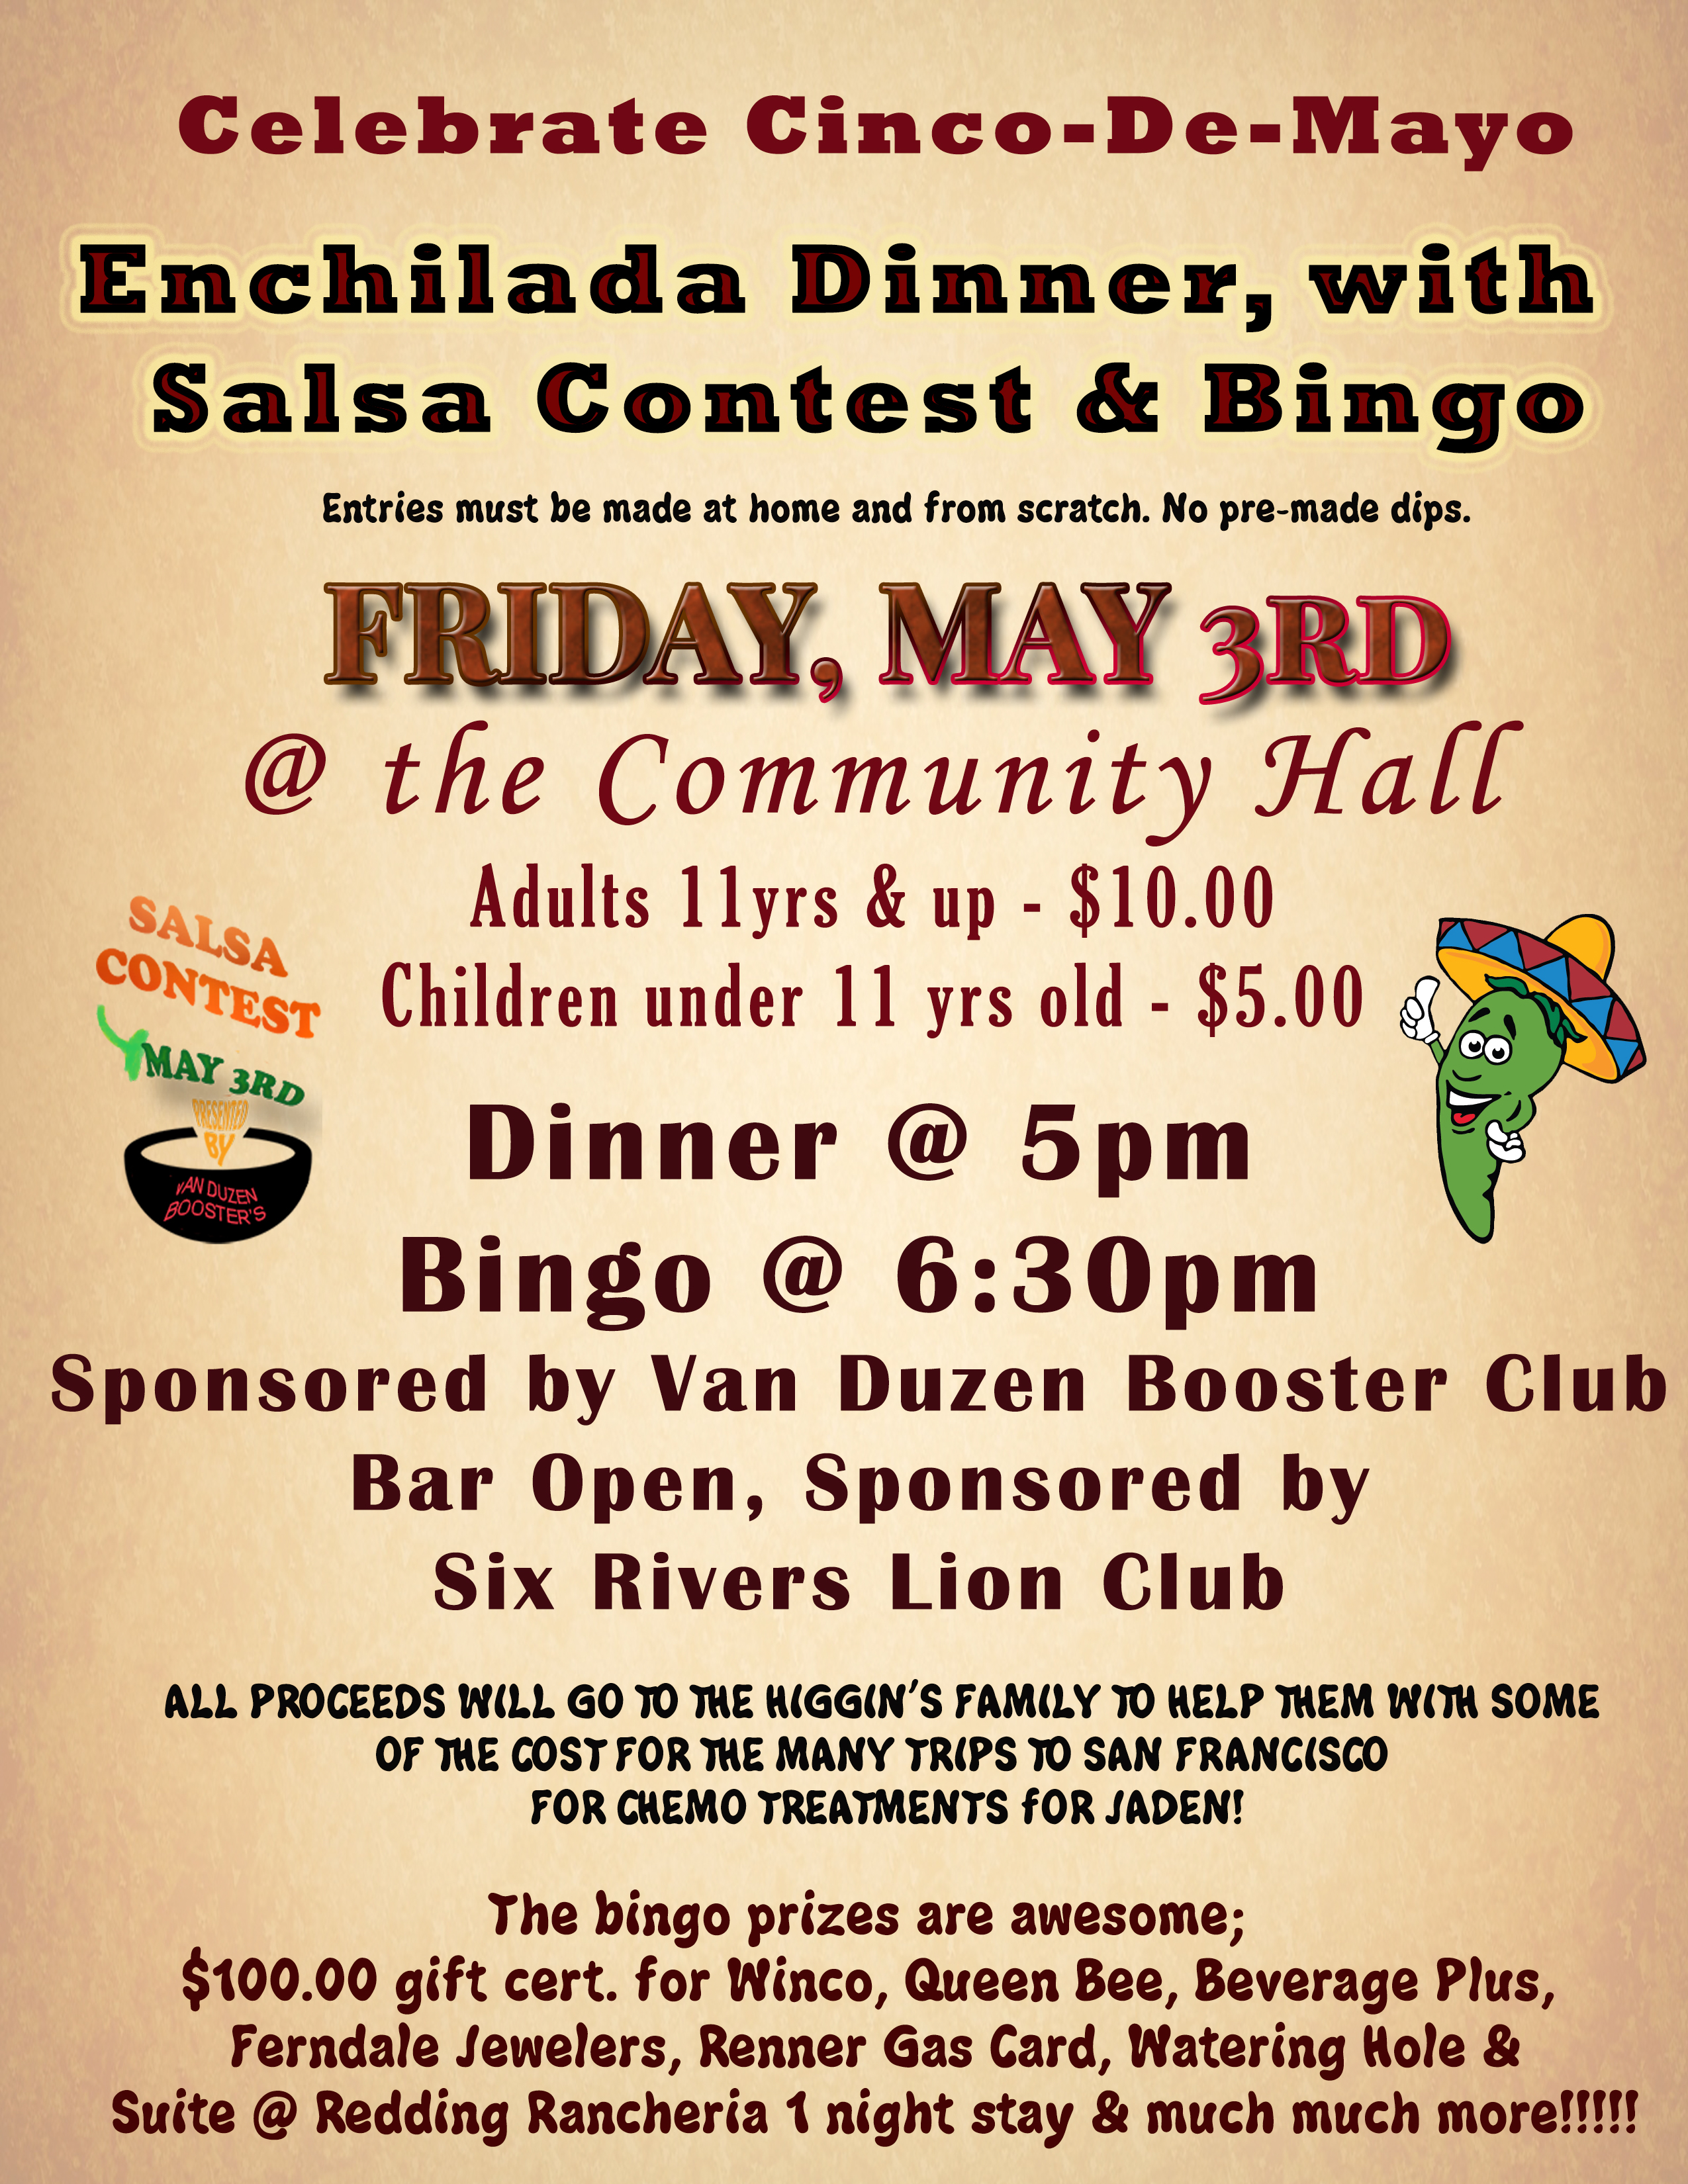 Enchilda__Bingo_night